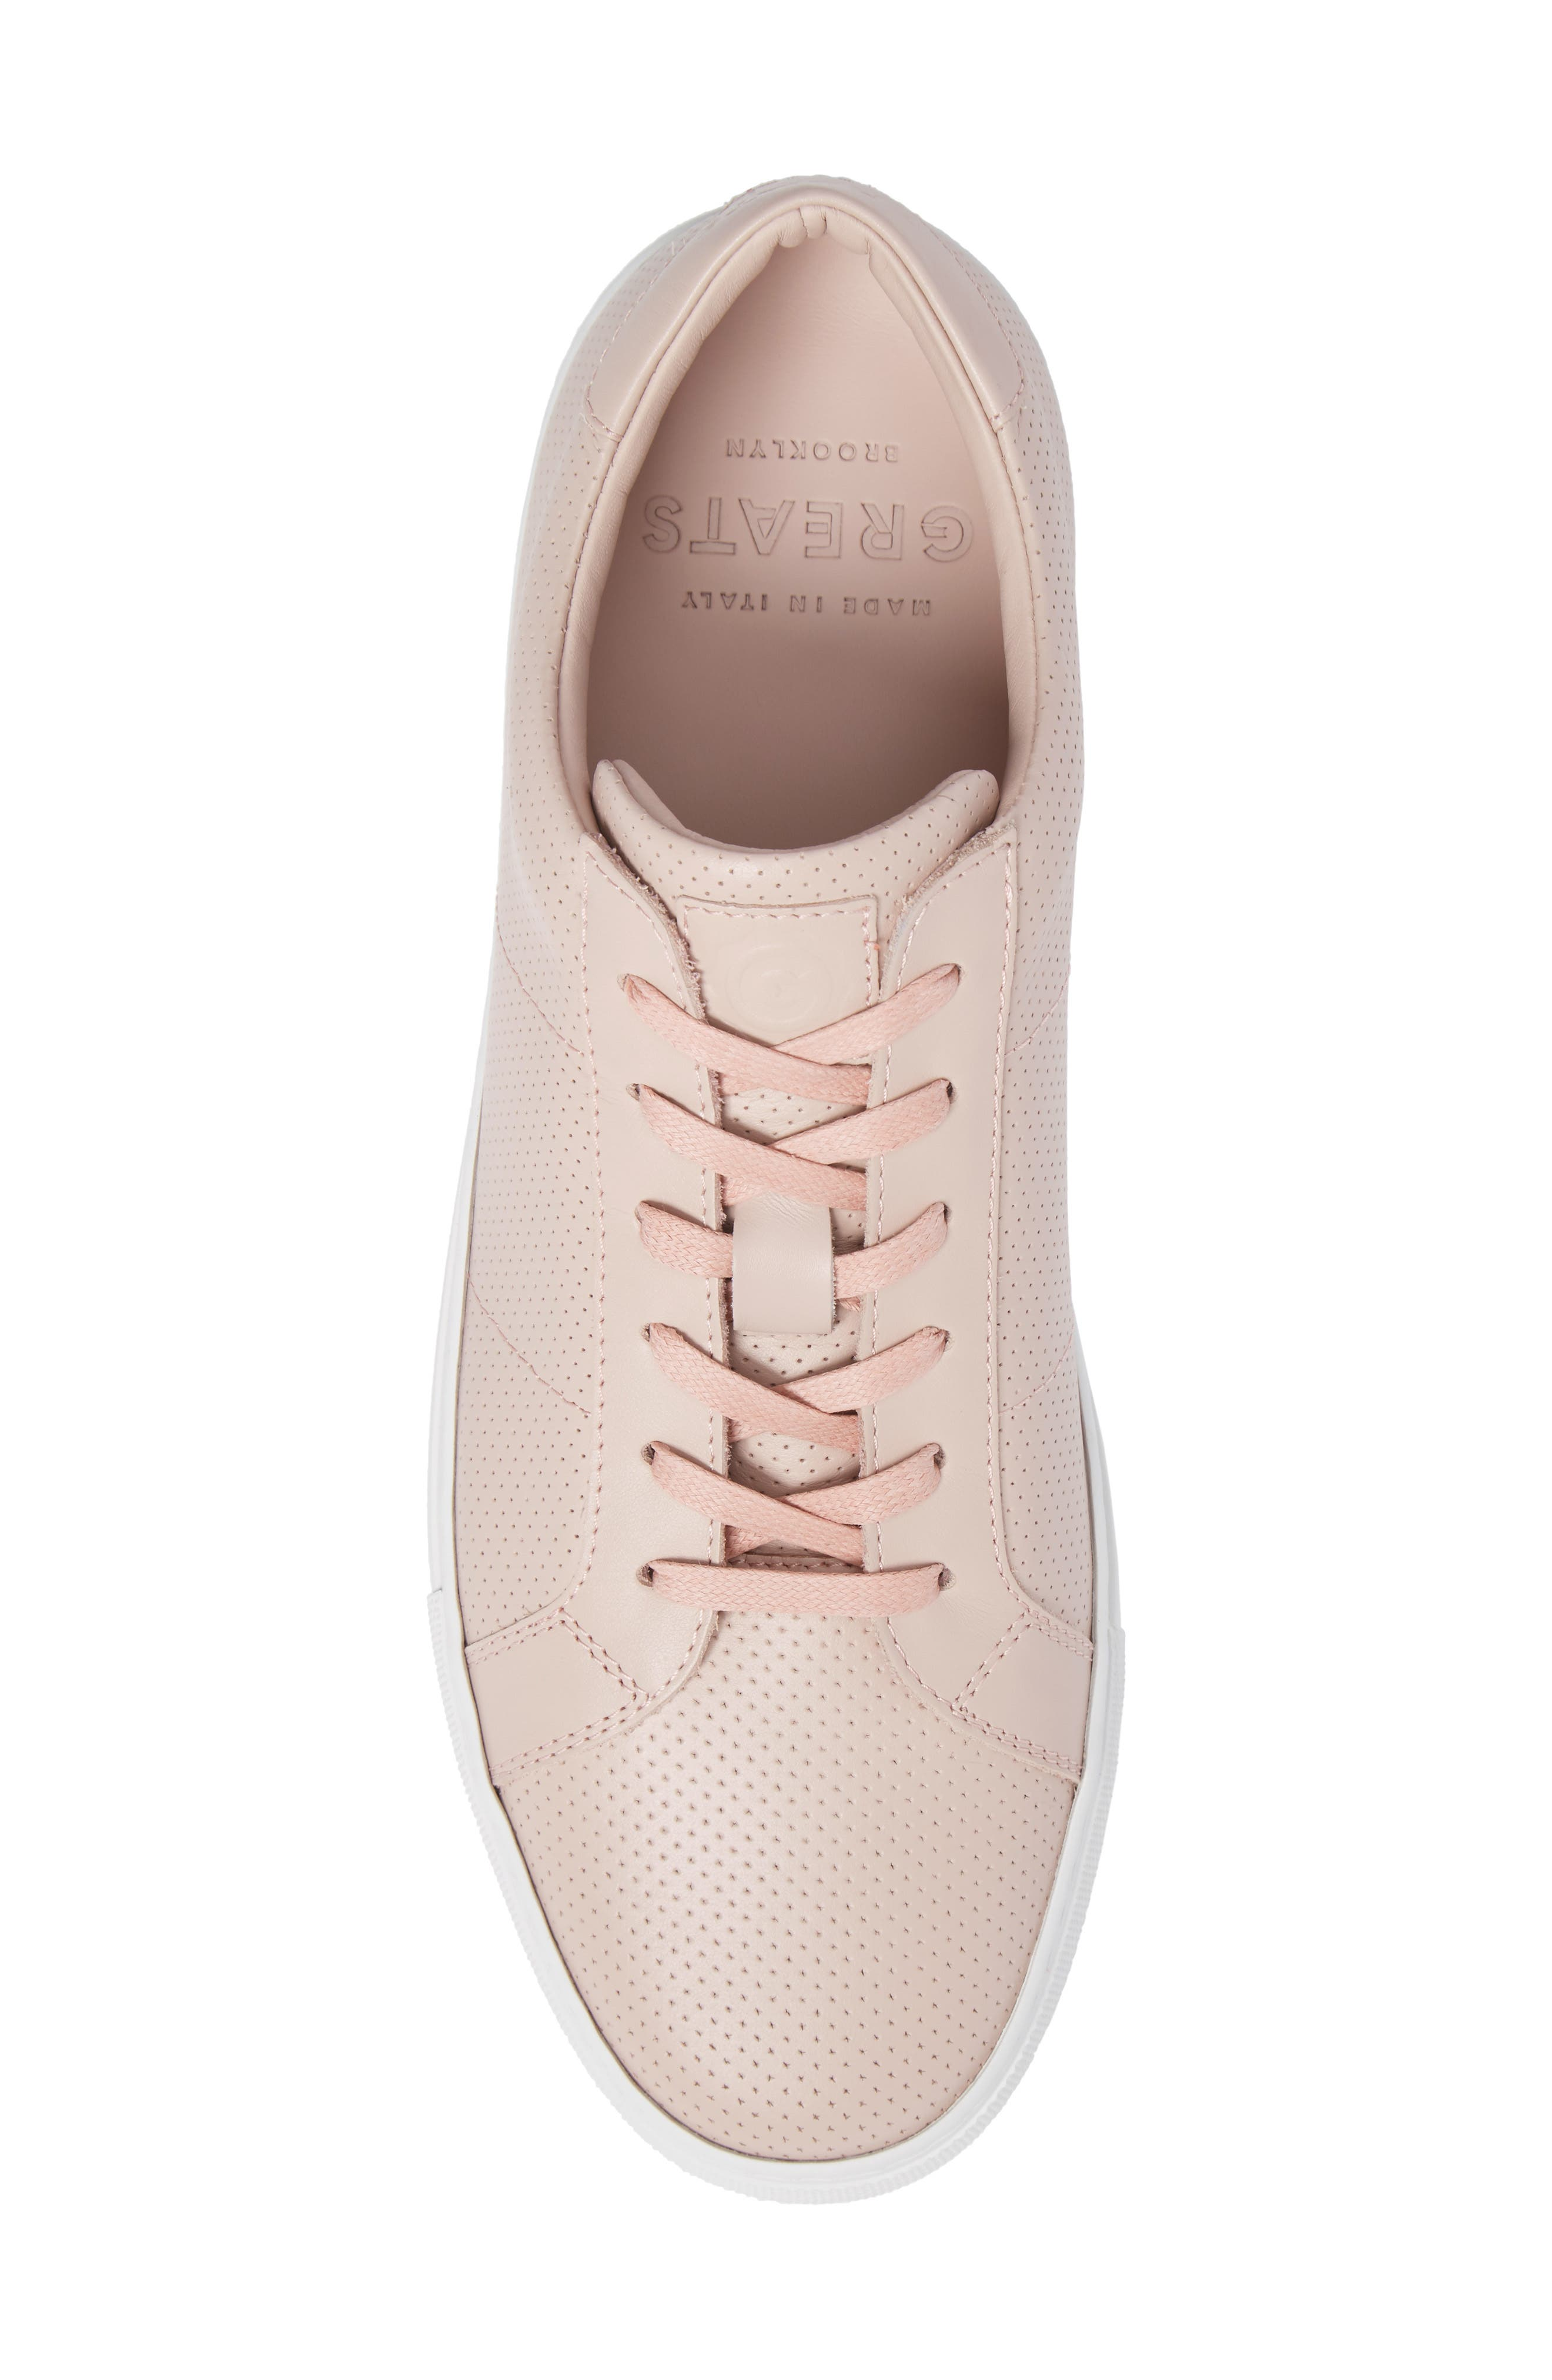 Royale Perforated Low Top Sneaker,                             Alternate thumbnail 5, color,                             BLUSH PERFORATED LEATHER